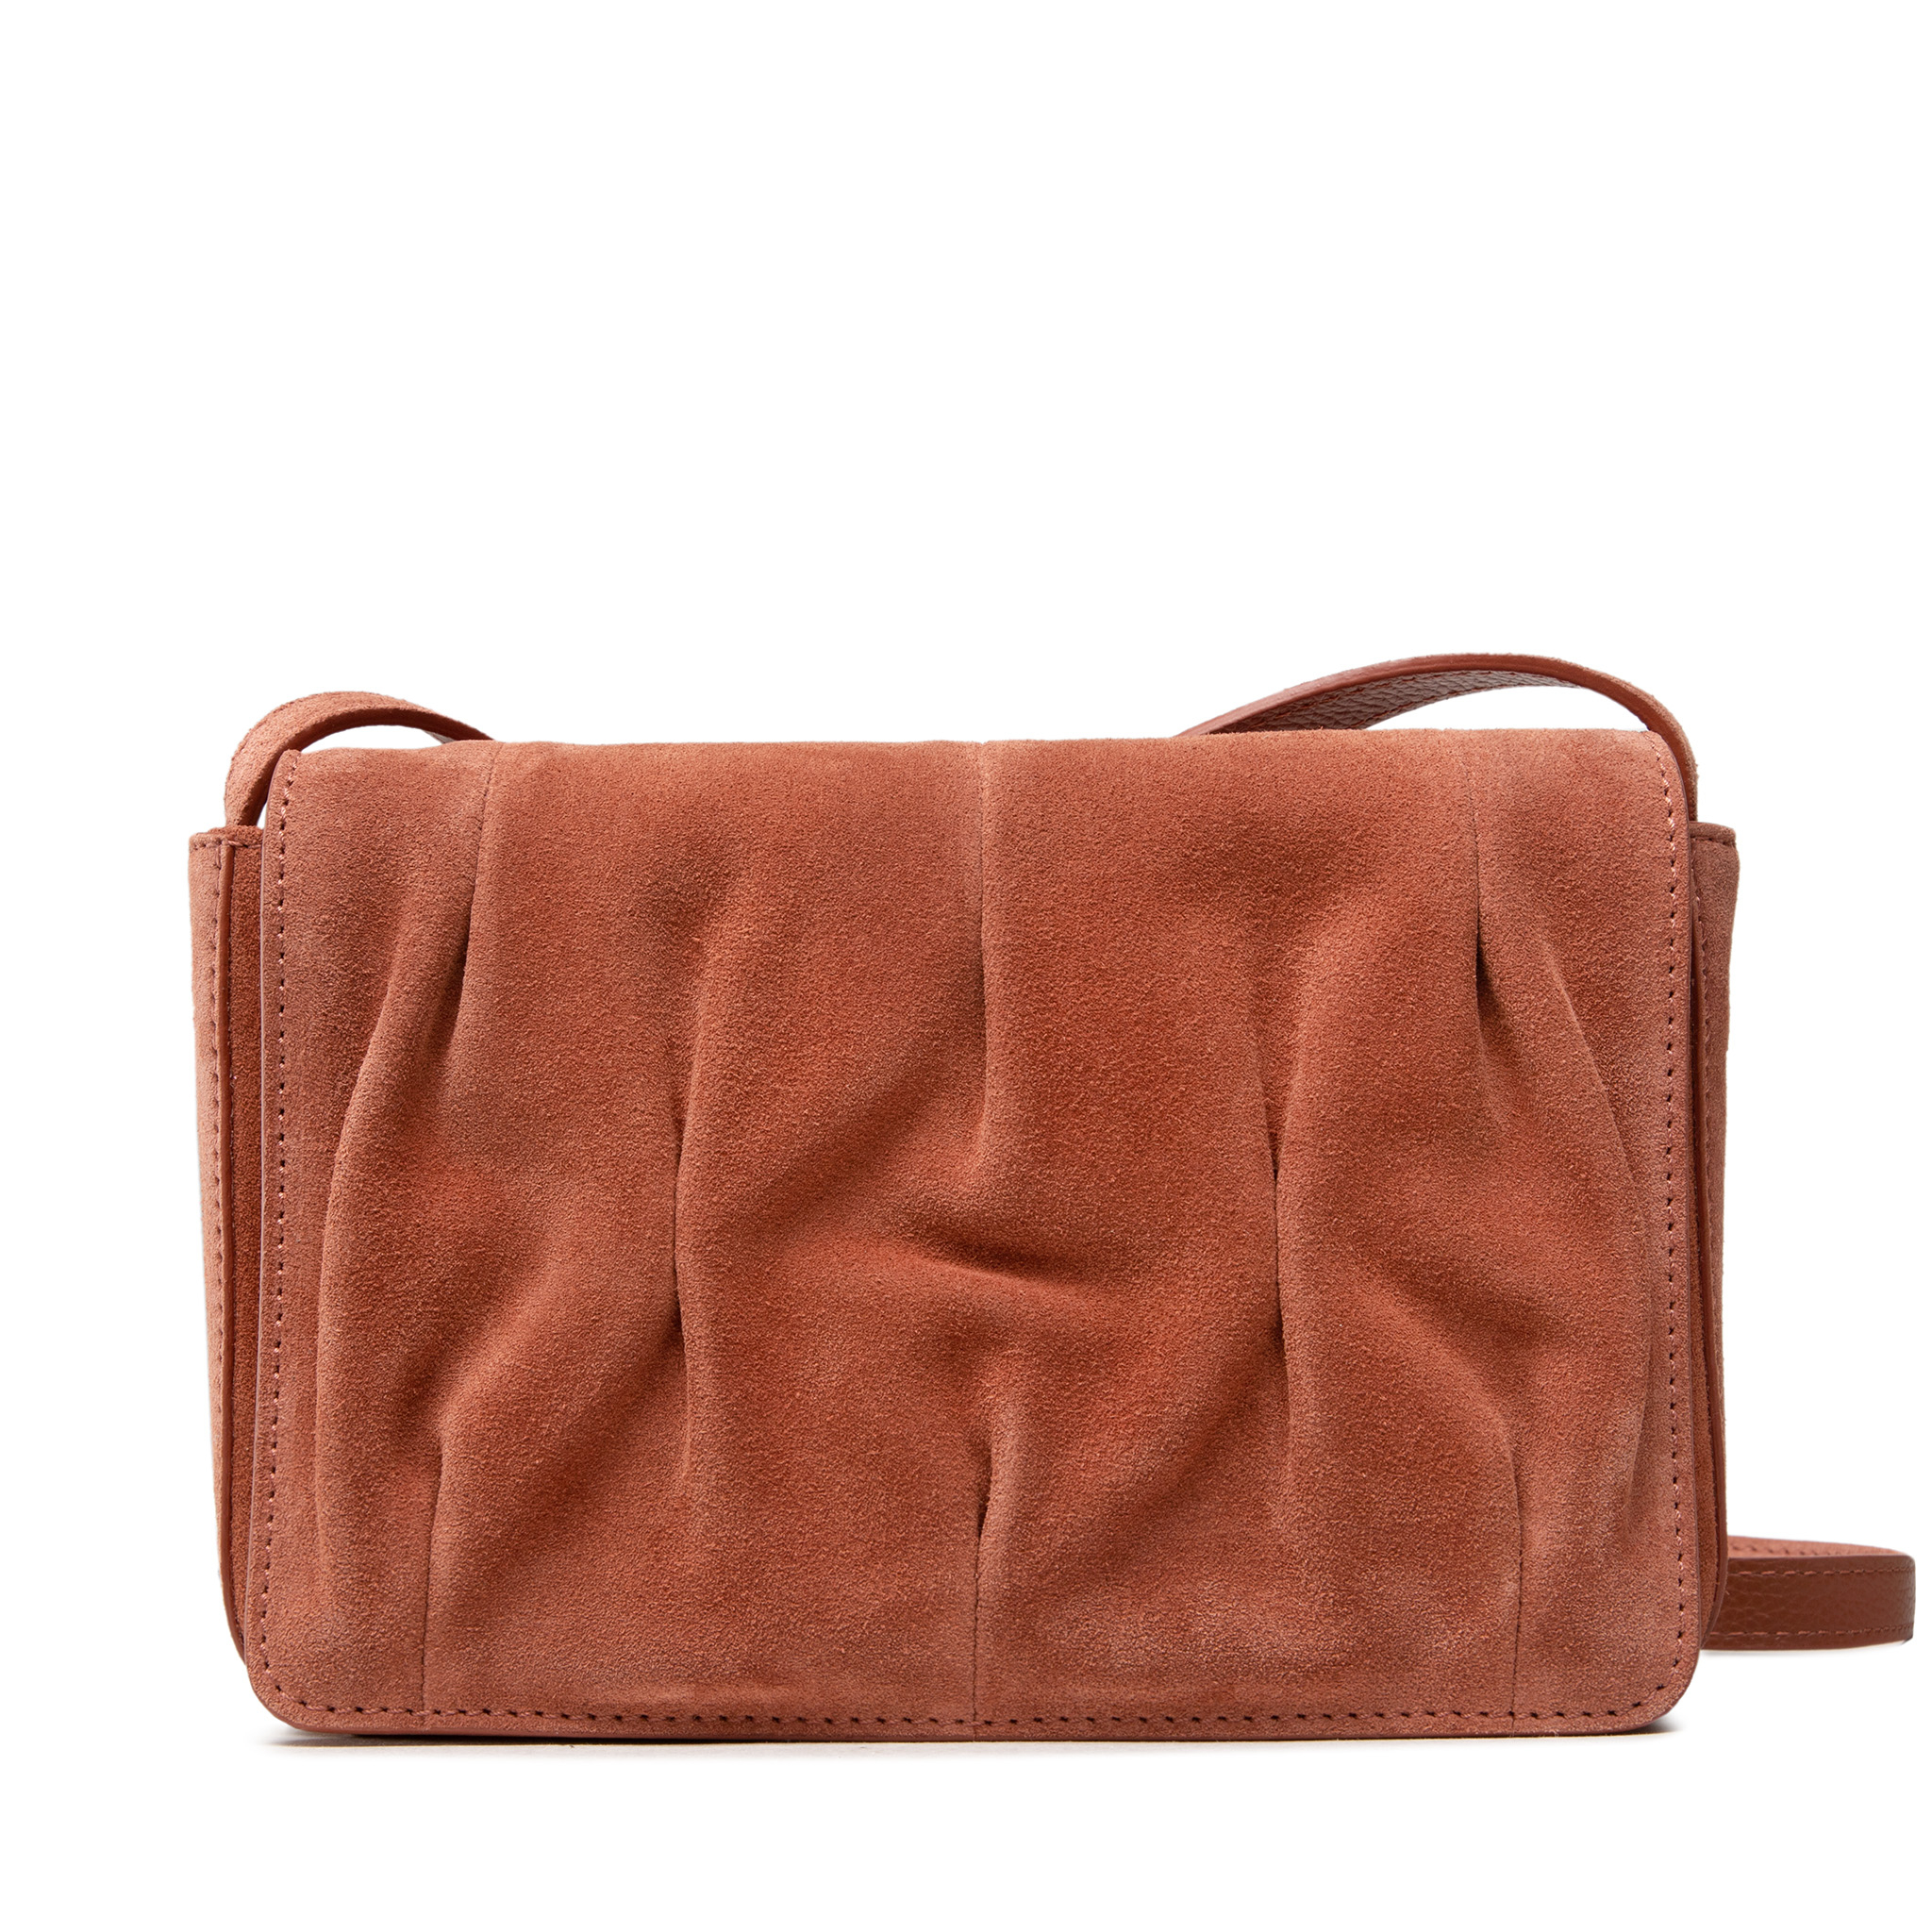 Coccinelle IC1 Marquise Goodie Suede E1 IC1 12 02 01 Cinnamon R50